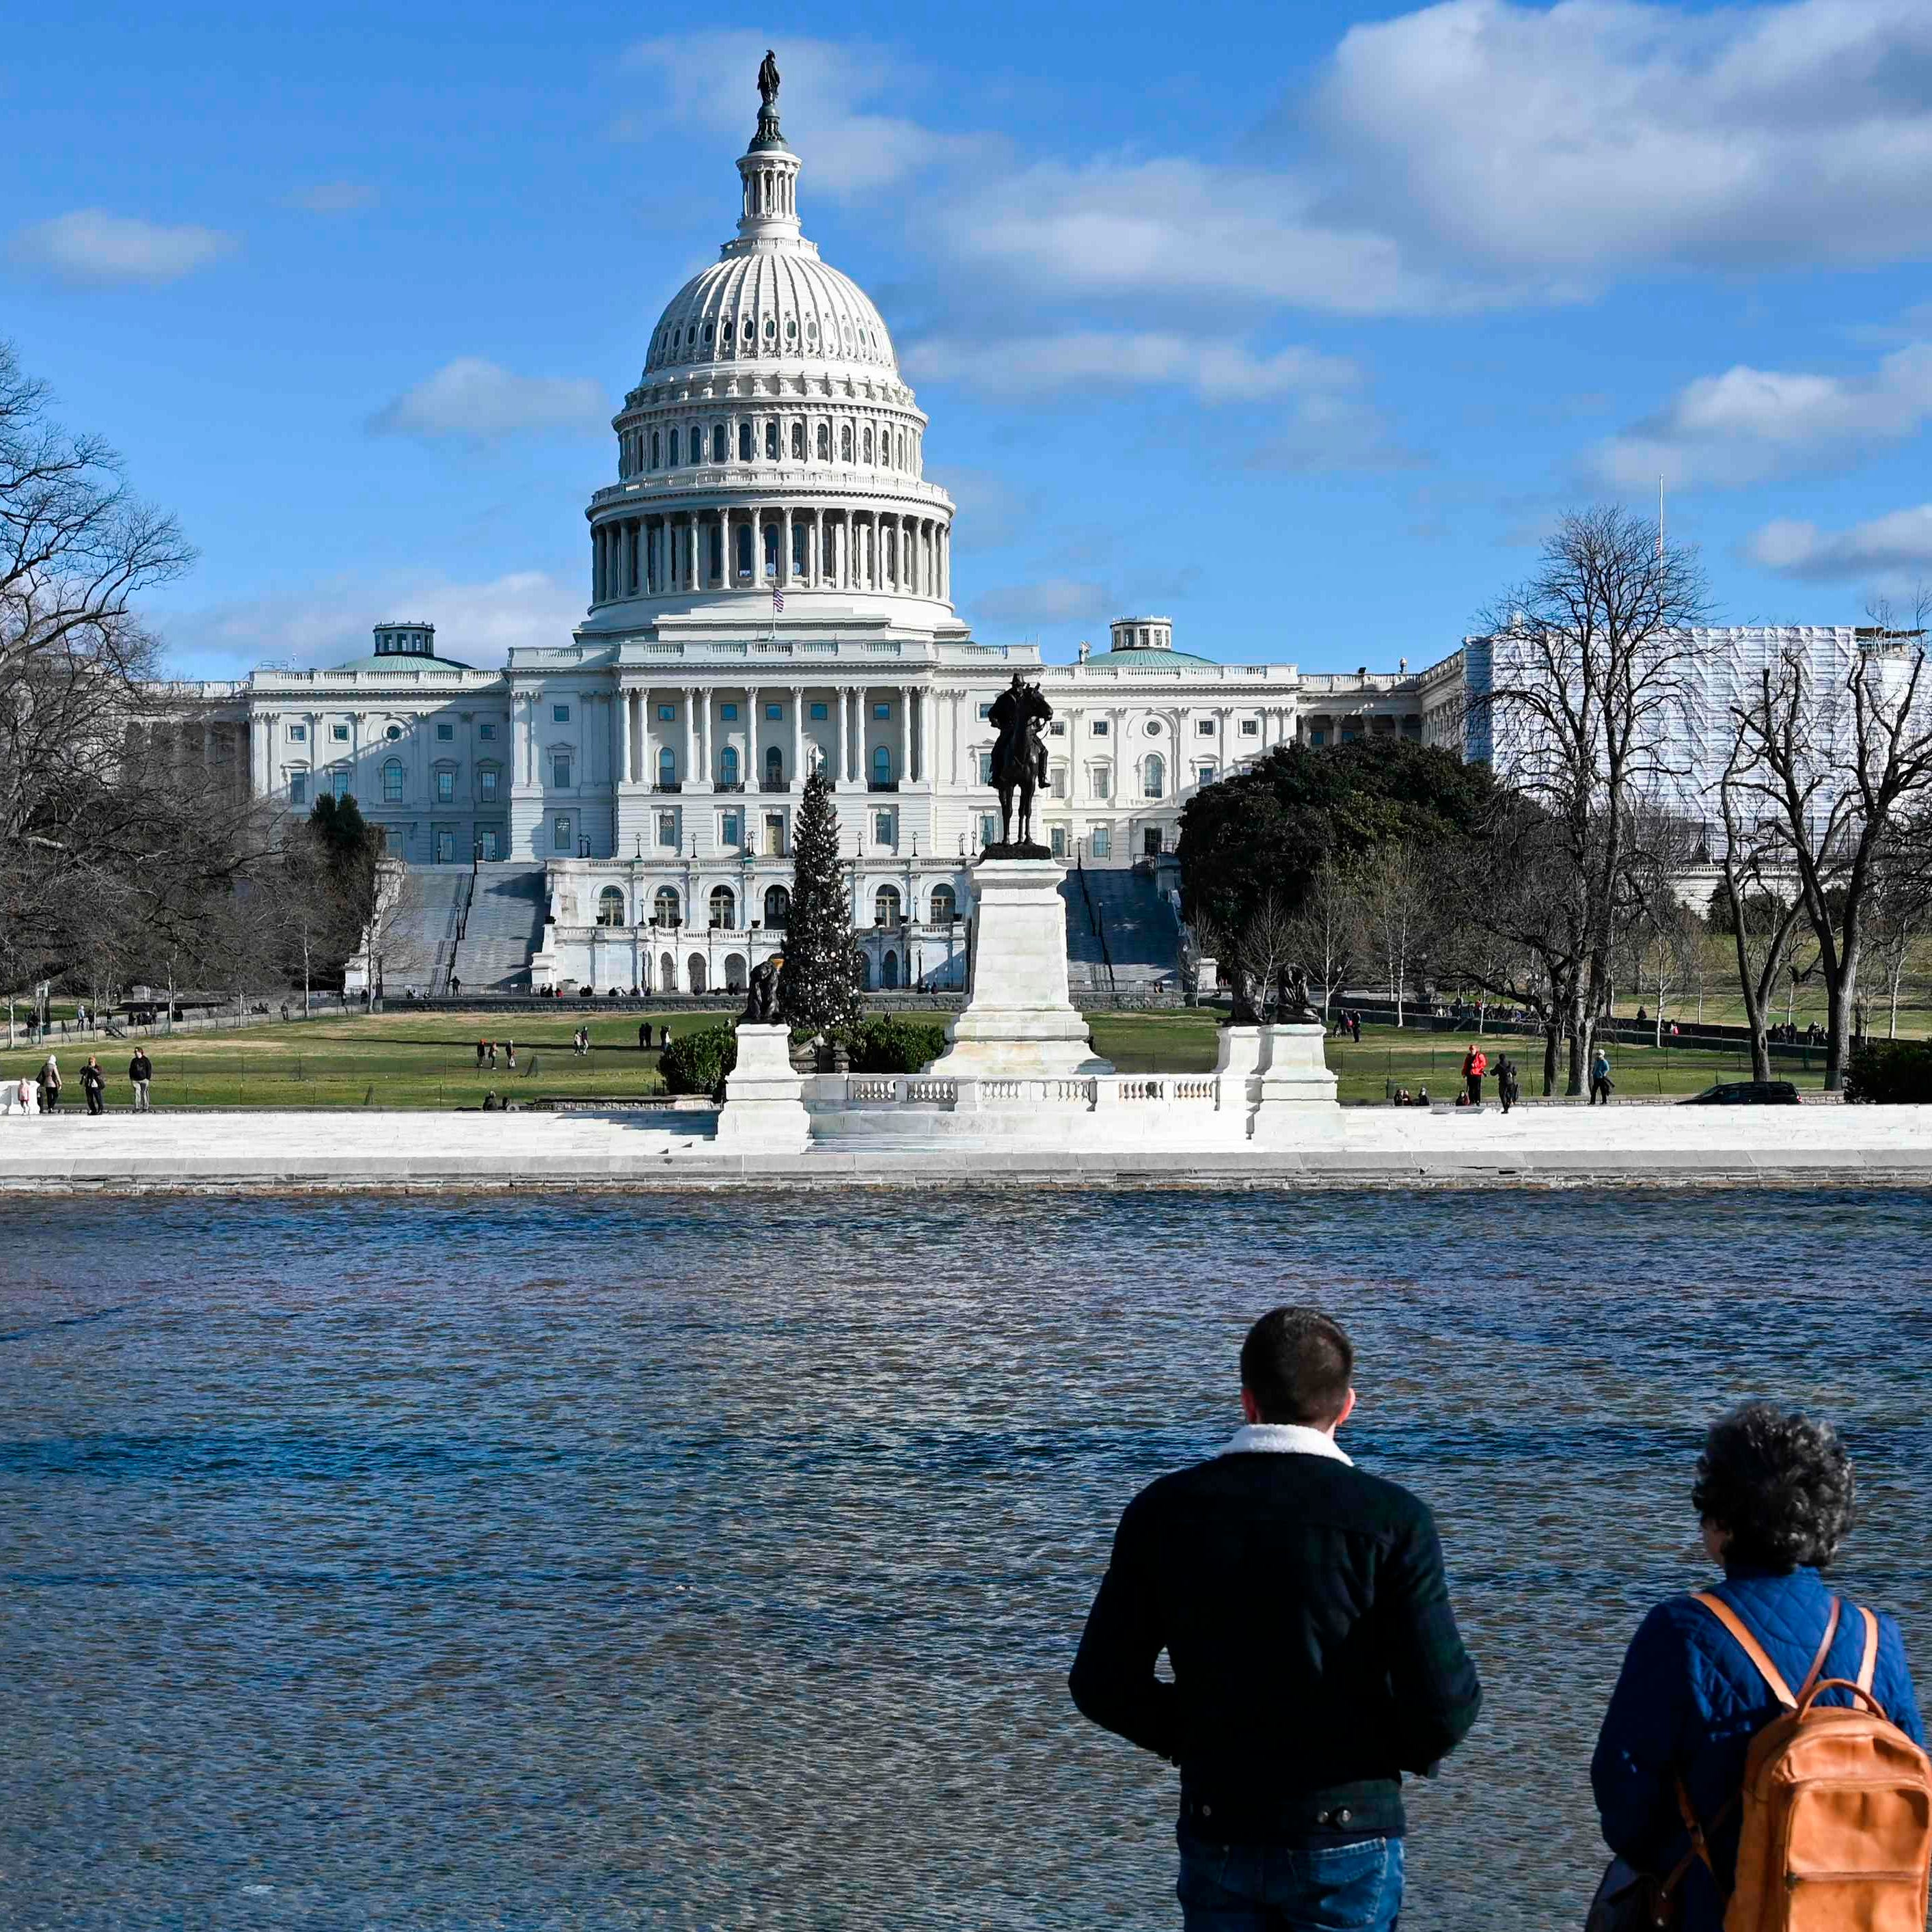 Tourists look at the U.S. Capitol in Washington, on Dec. 22, 2018, as the government continues in a partial shutdown.